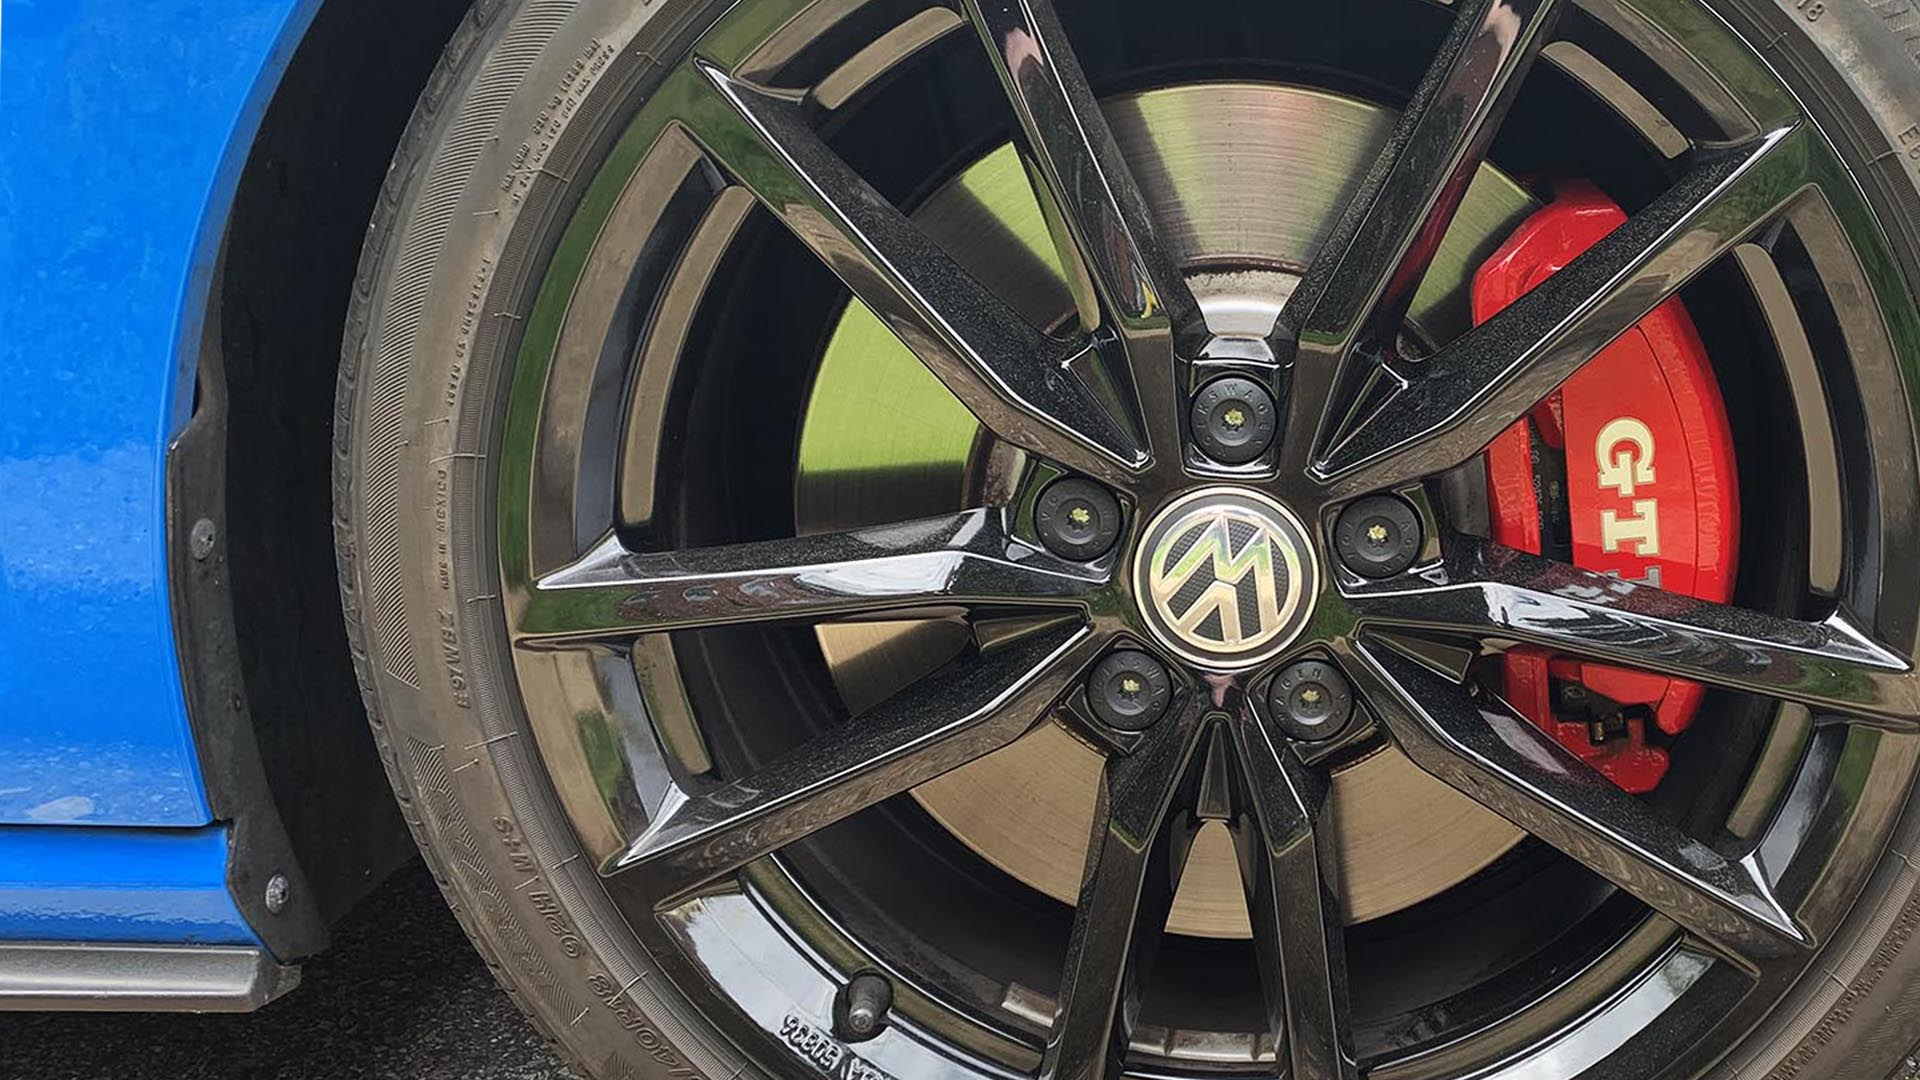 The Definitive Guide To Mk7 Volkswagen GTI Brakes